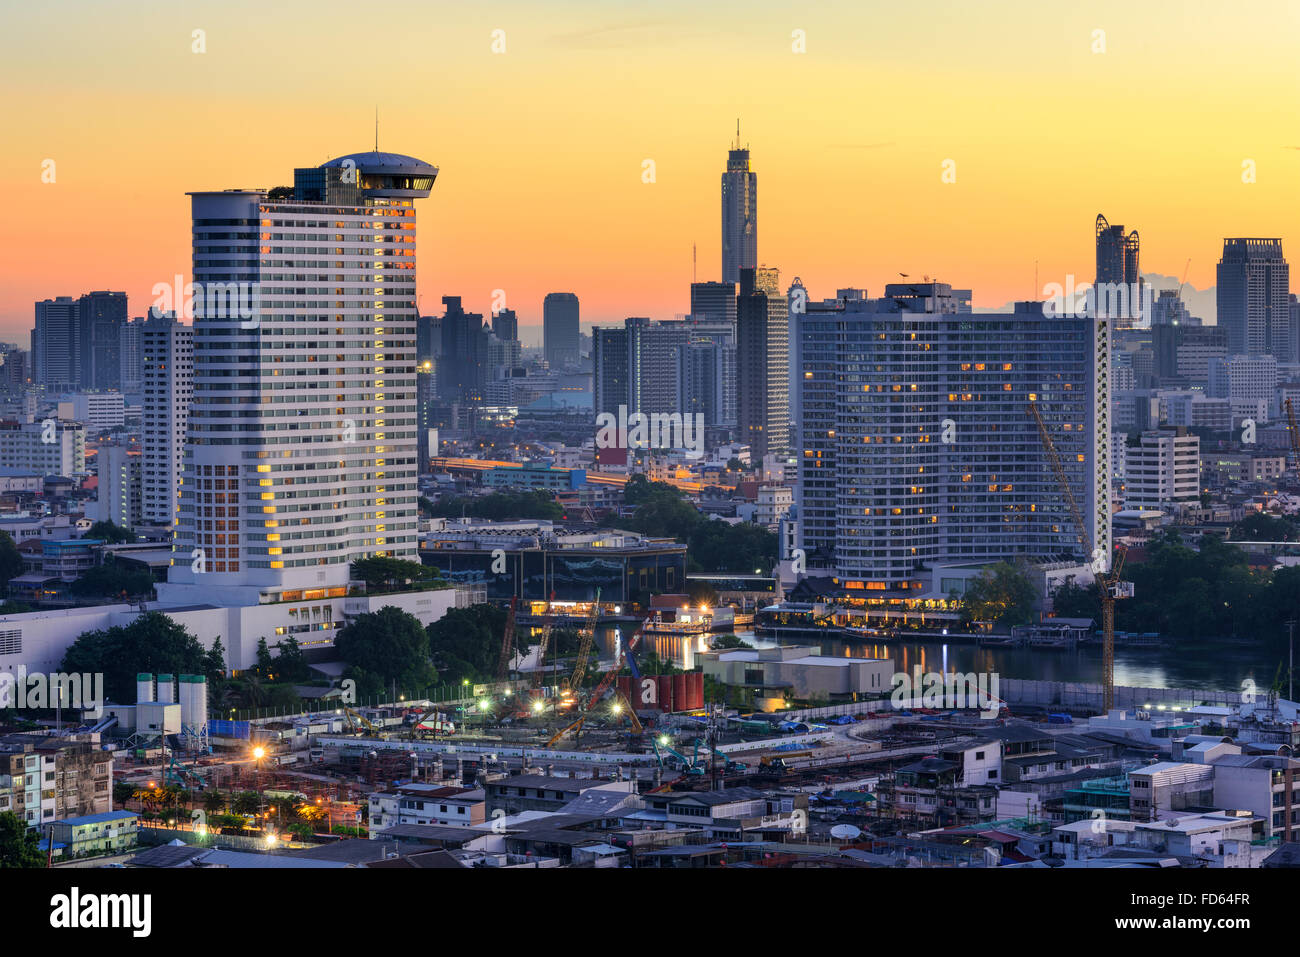 Bangkok, Thailand skyline on the Chao Phraya River. Stock Photo